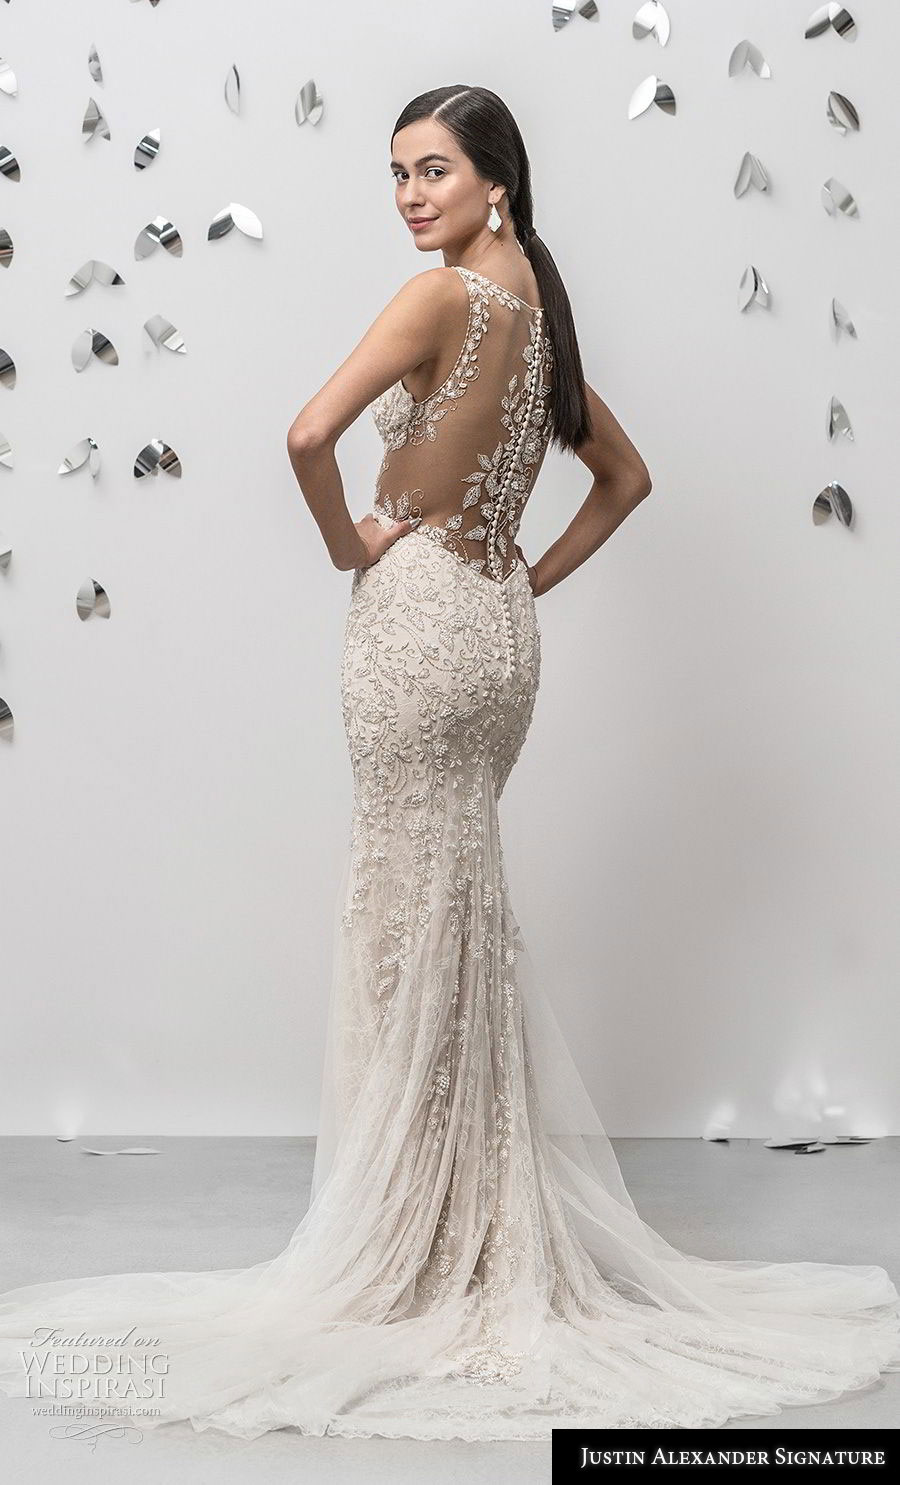 justin alexander fall 2018 signature sleeveless with strap v neck heavily embellished bodice elegant champagne sheath fit and flare wedding dress sheer button back chapel train (18) bv